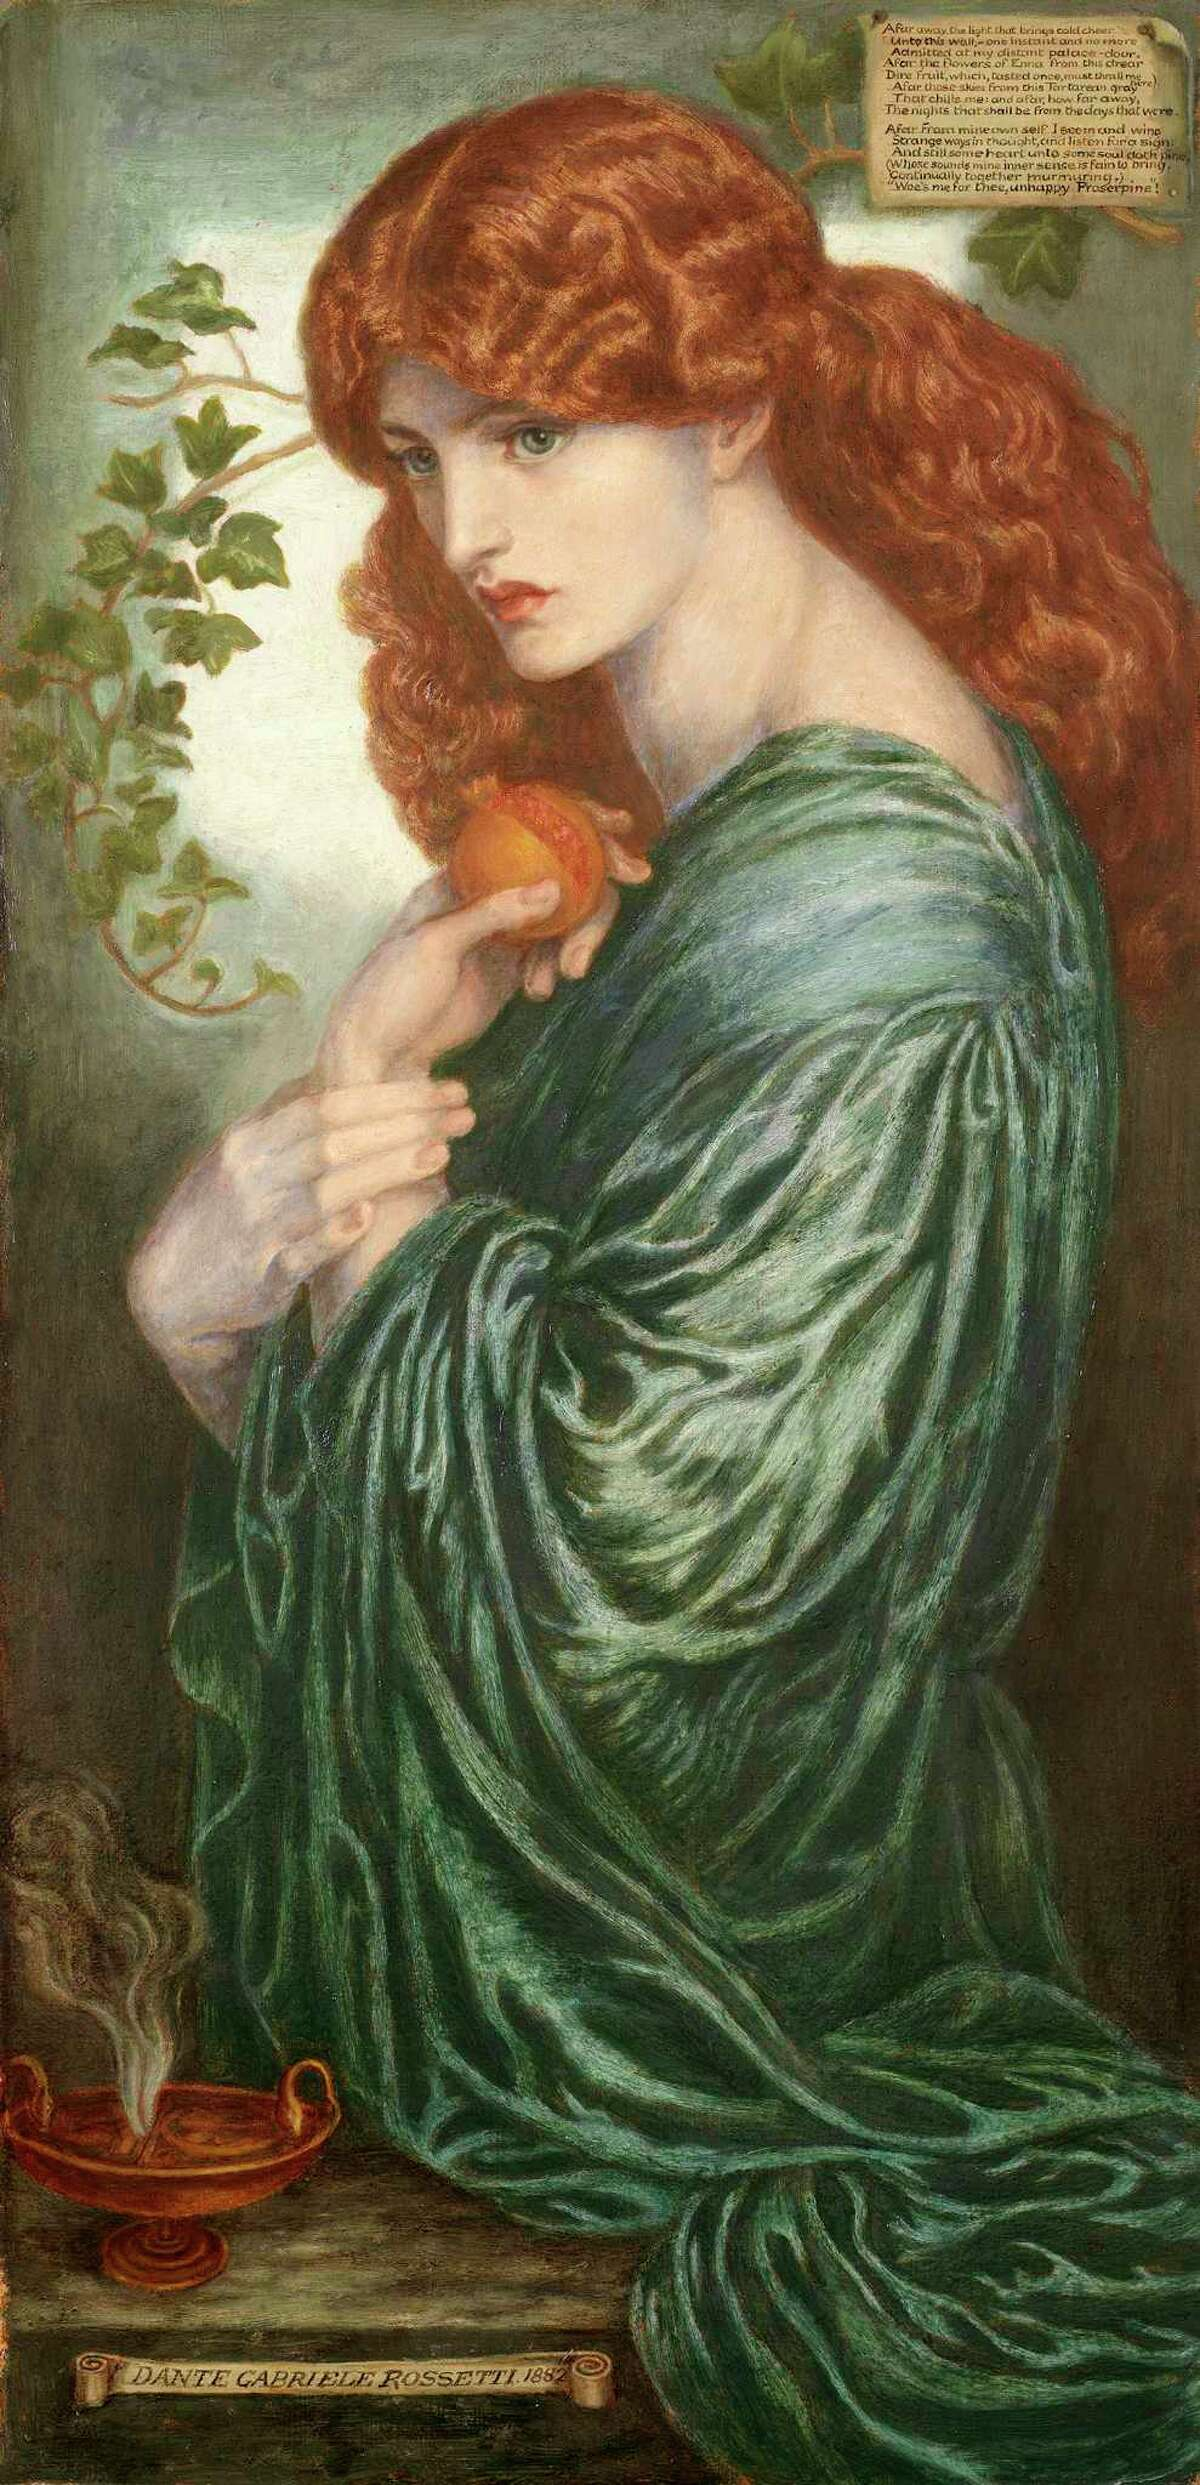 """Dante Gabriel Rosetti's oil painting """"Proserpine,"""" dated 1881-82, is on display at the San Antonio Museum of Art as part of the exhibit """"Victorian Radicals: From the Pre-Raphaelites to the Arts and Crafts Movement."""""""